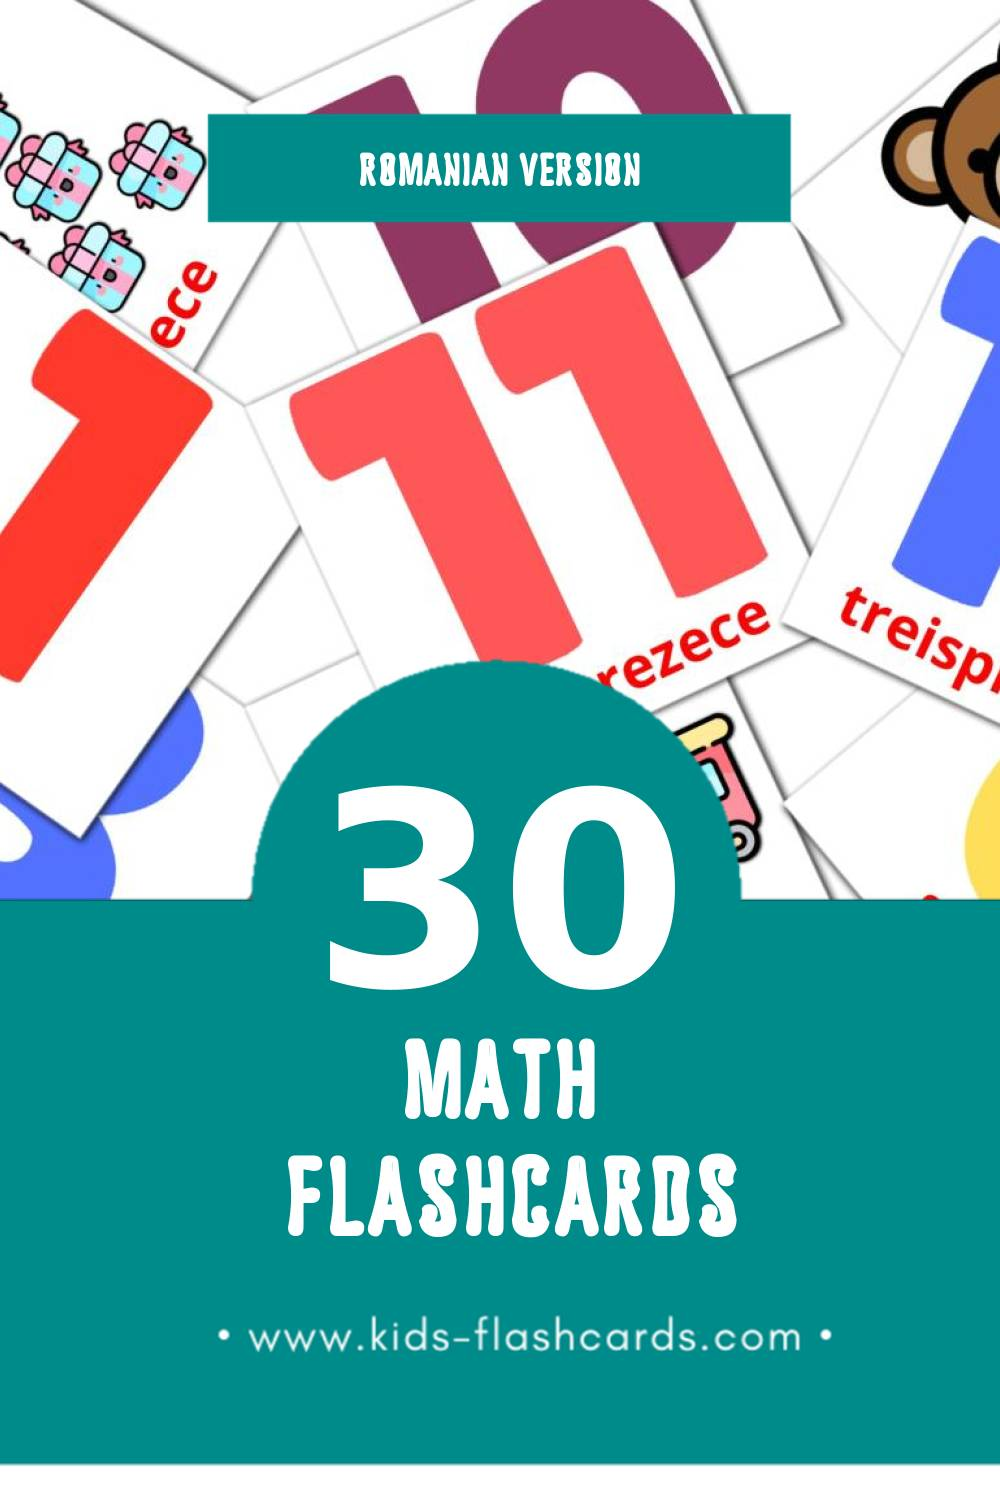 Visual Matematică Flashcards for Toddlers (30 cards in Romanian)